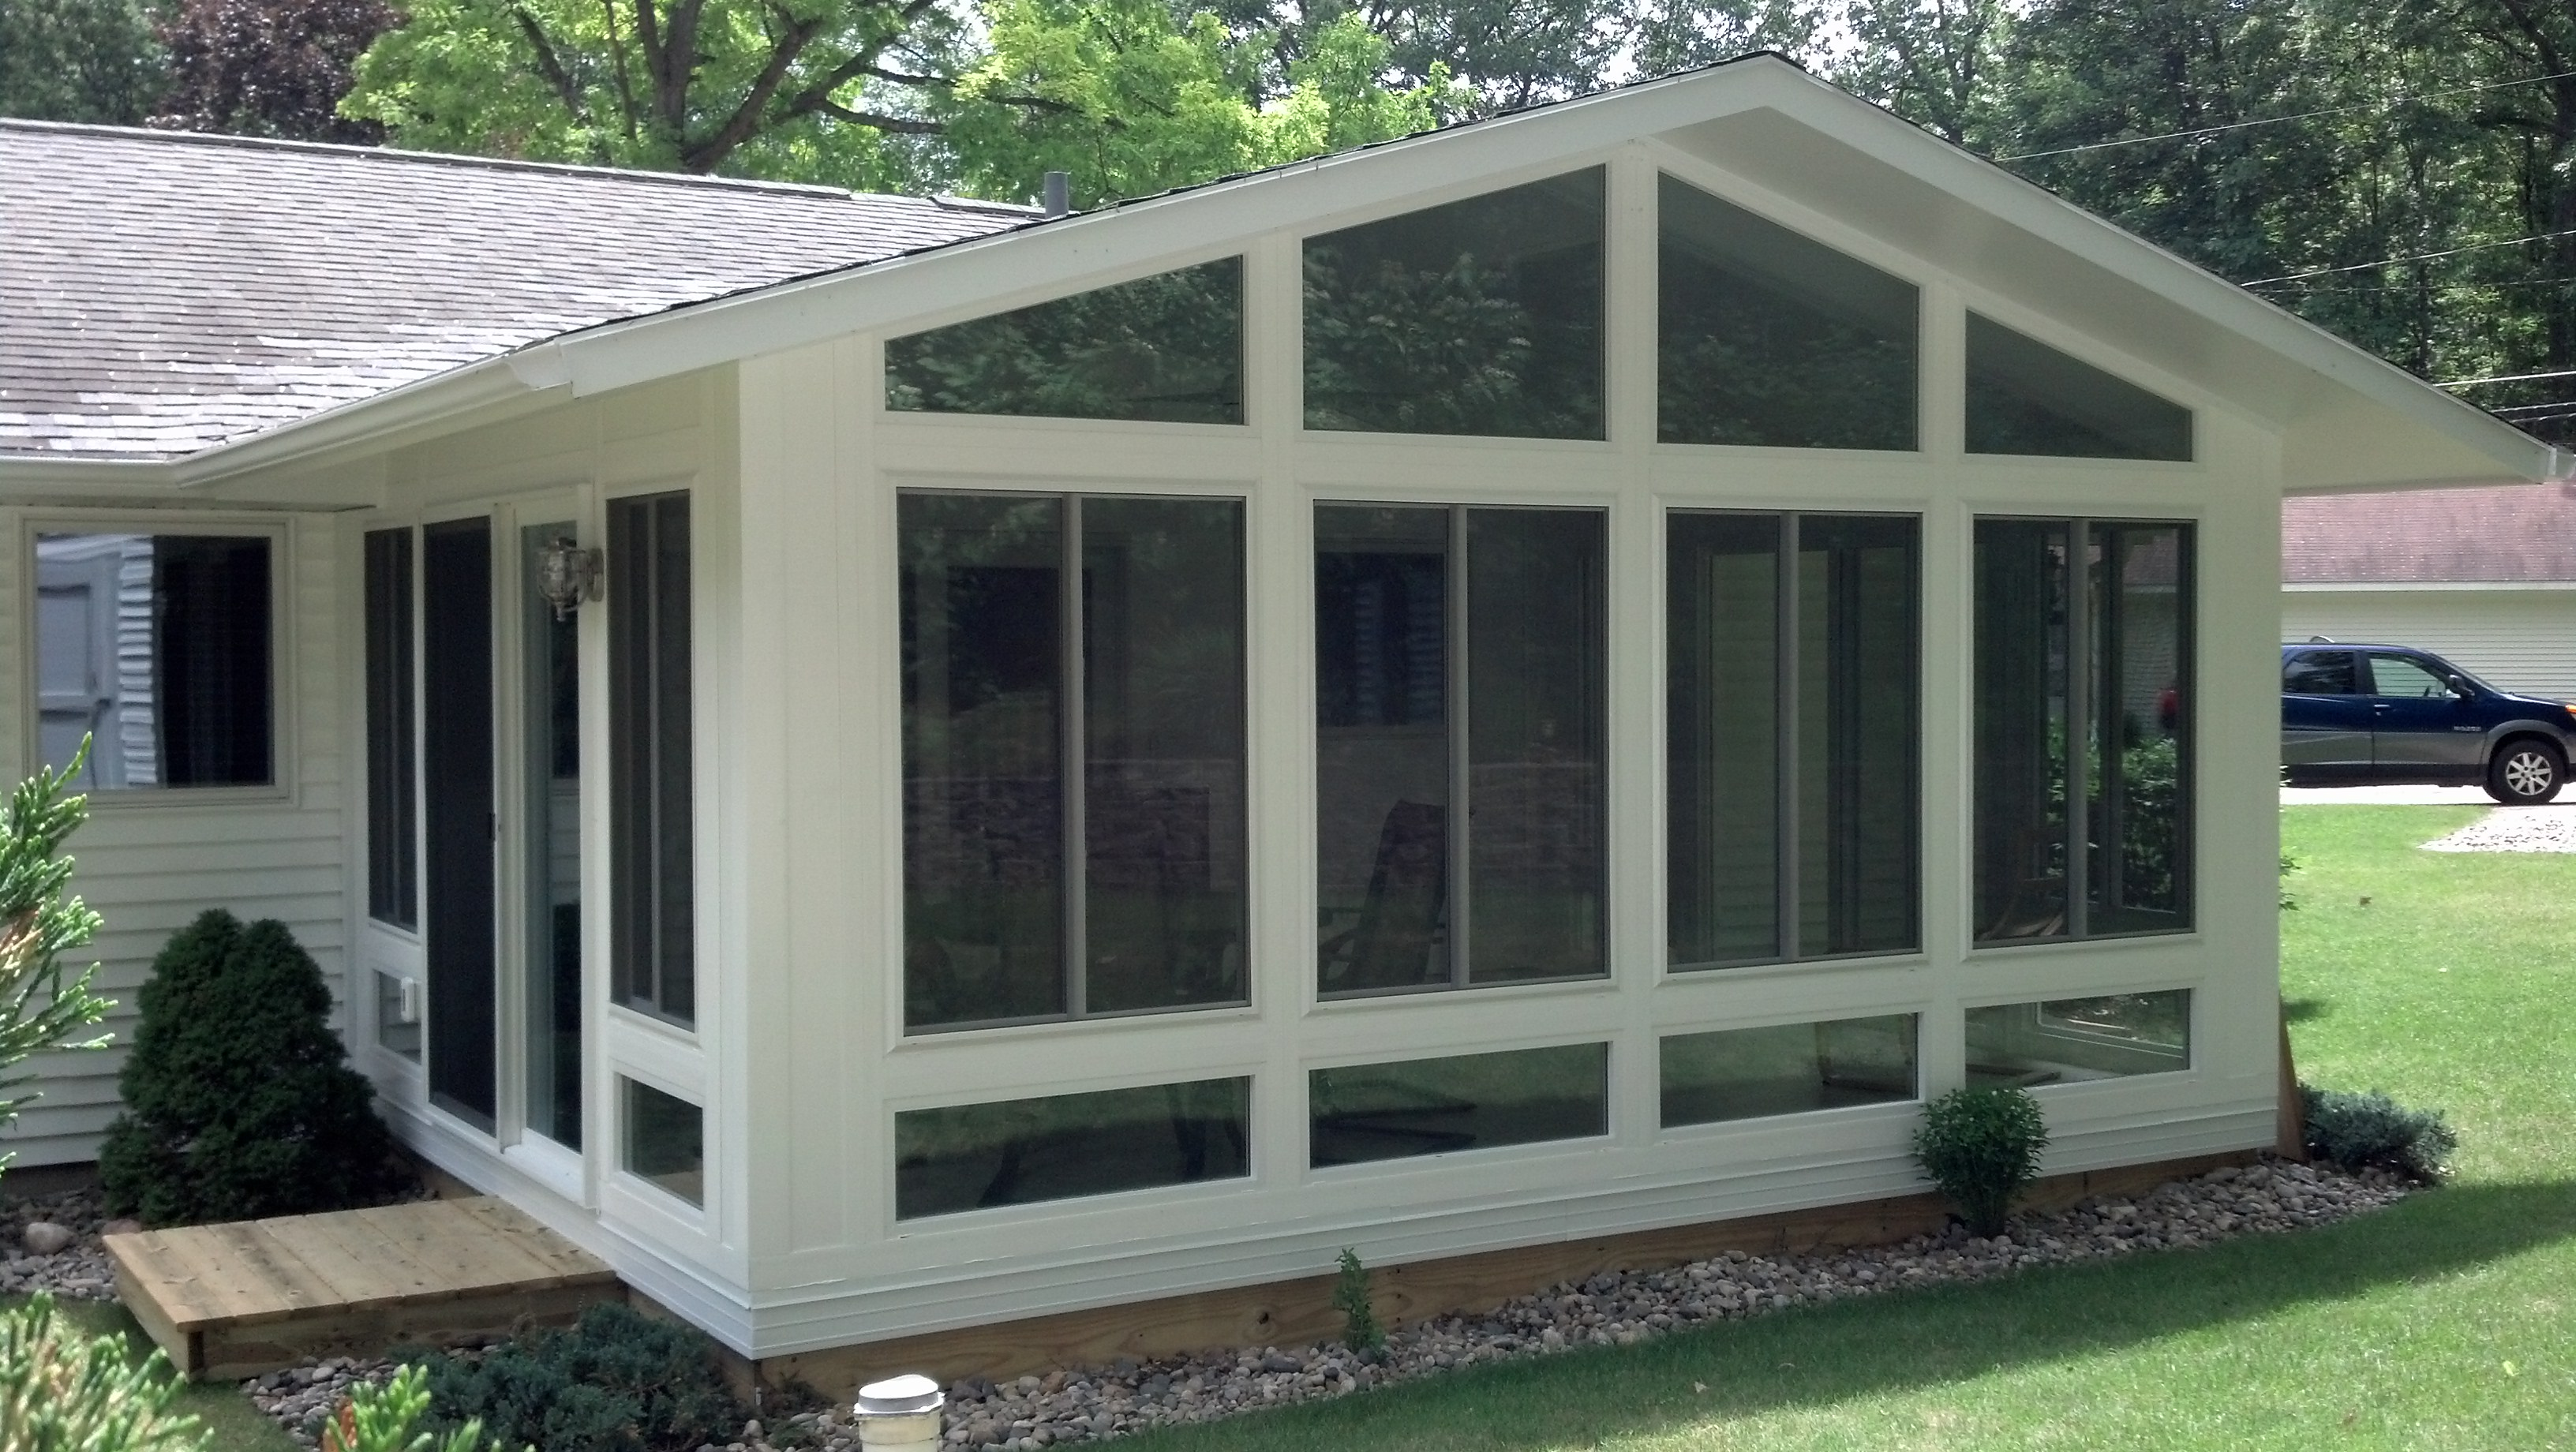 All-Glass Reverse Gable Style 4 Season Sunroom in Northern Michigan